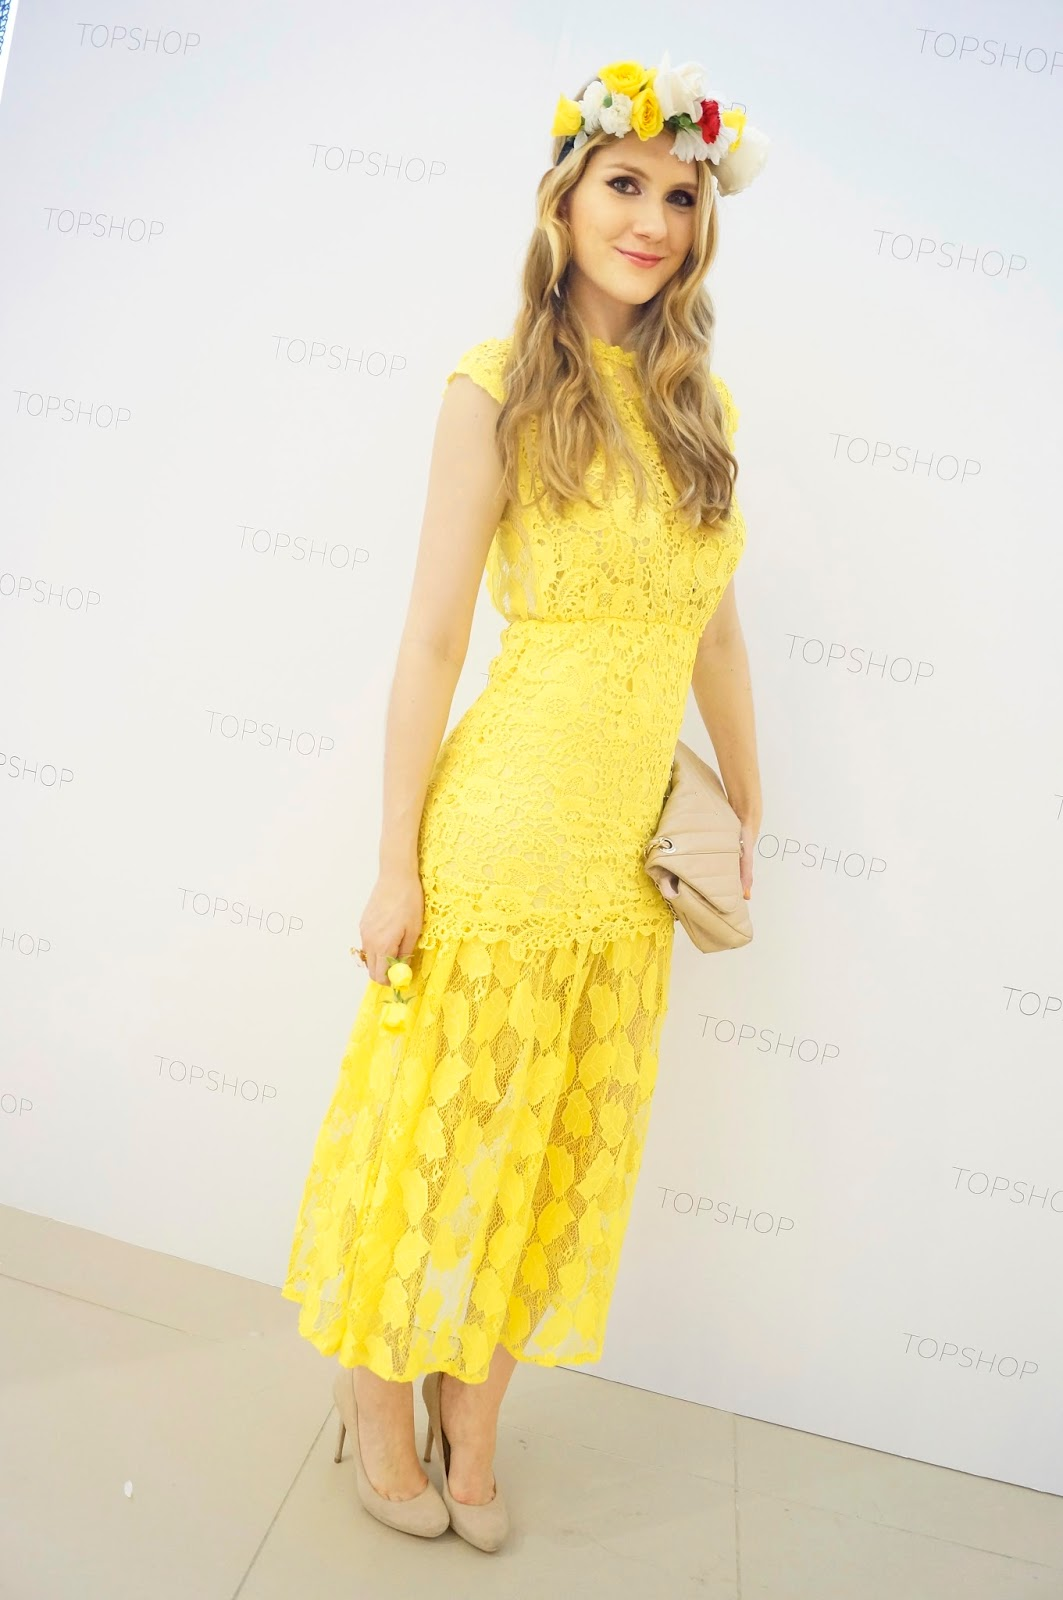 Loving this gorgeous yellow lace dress!